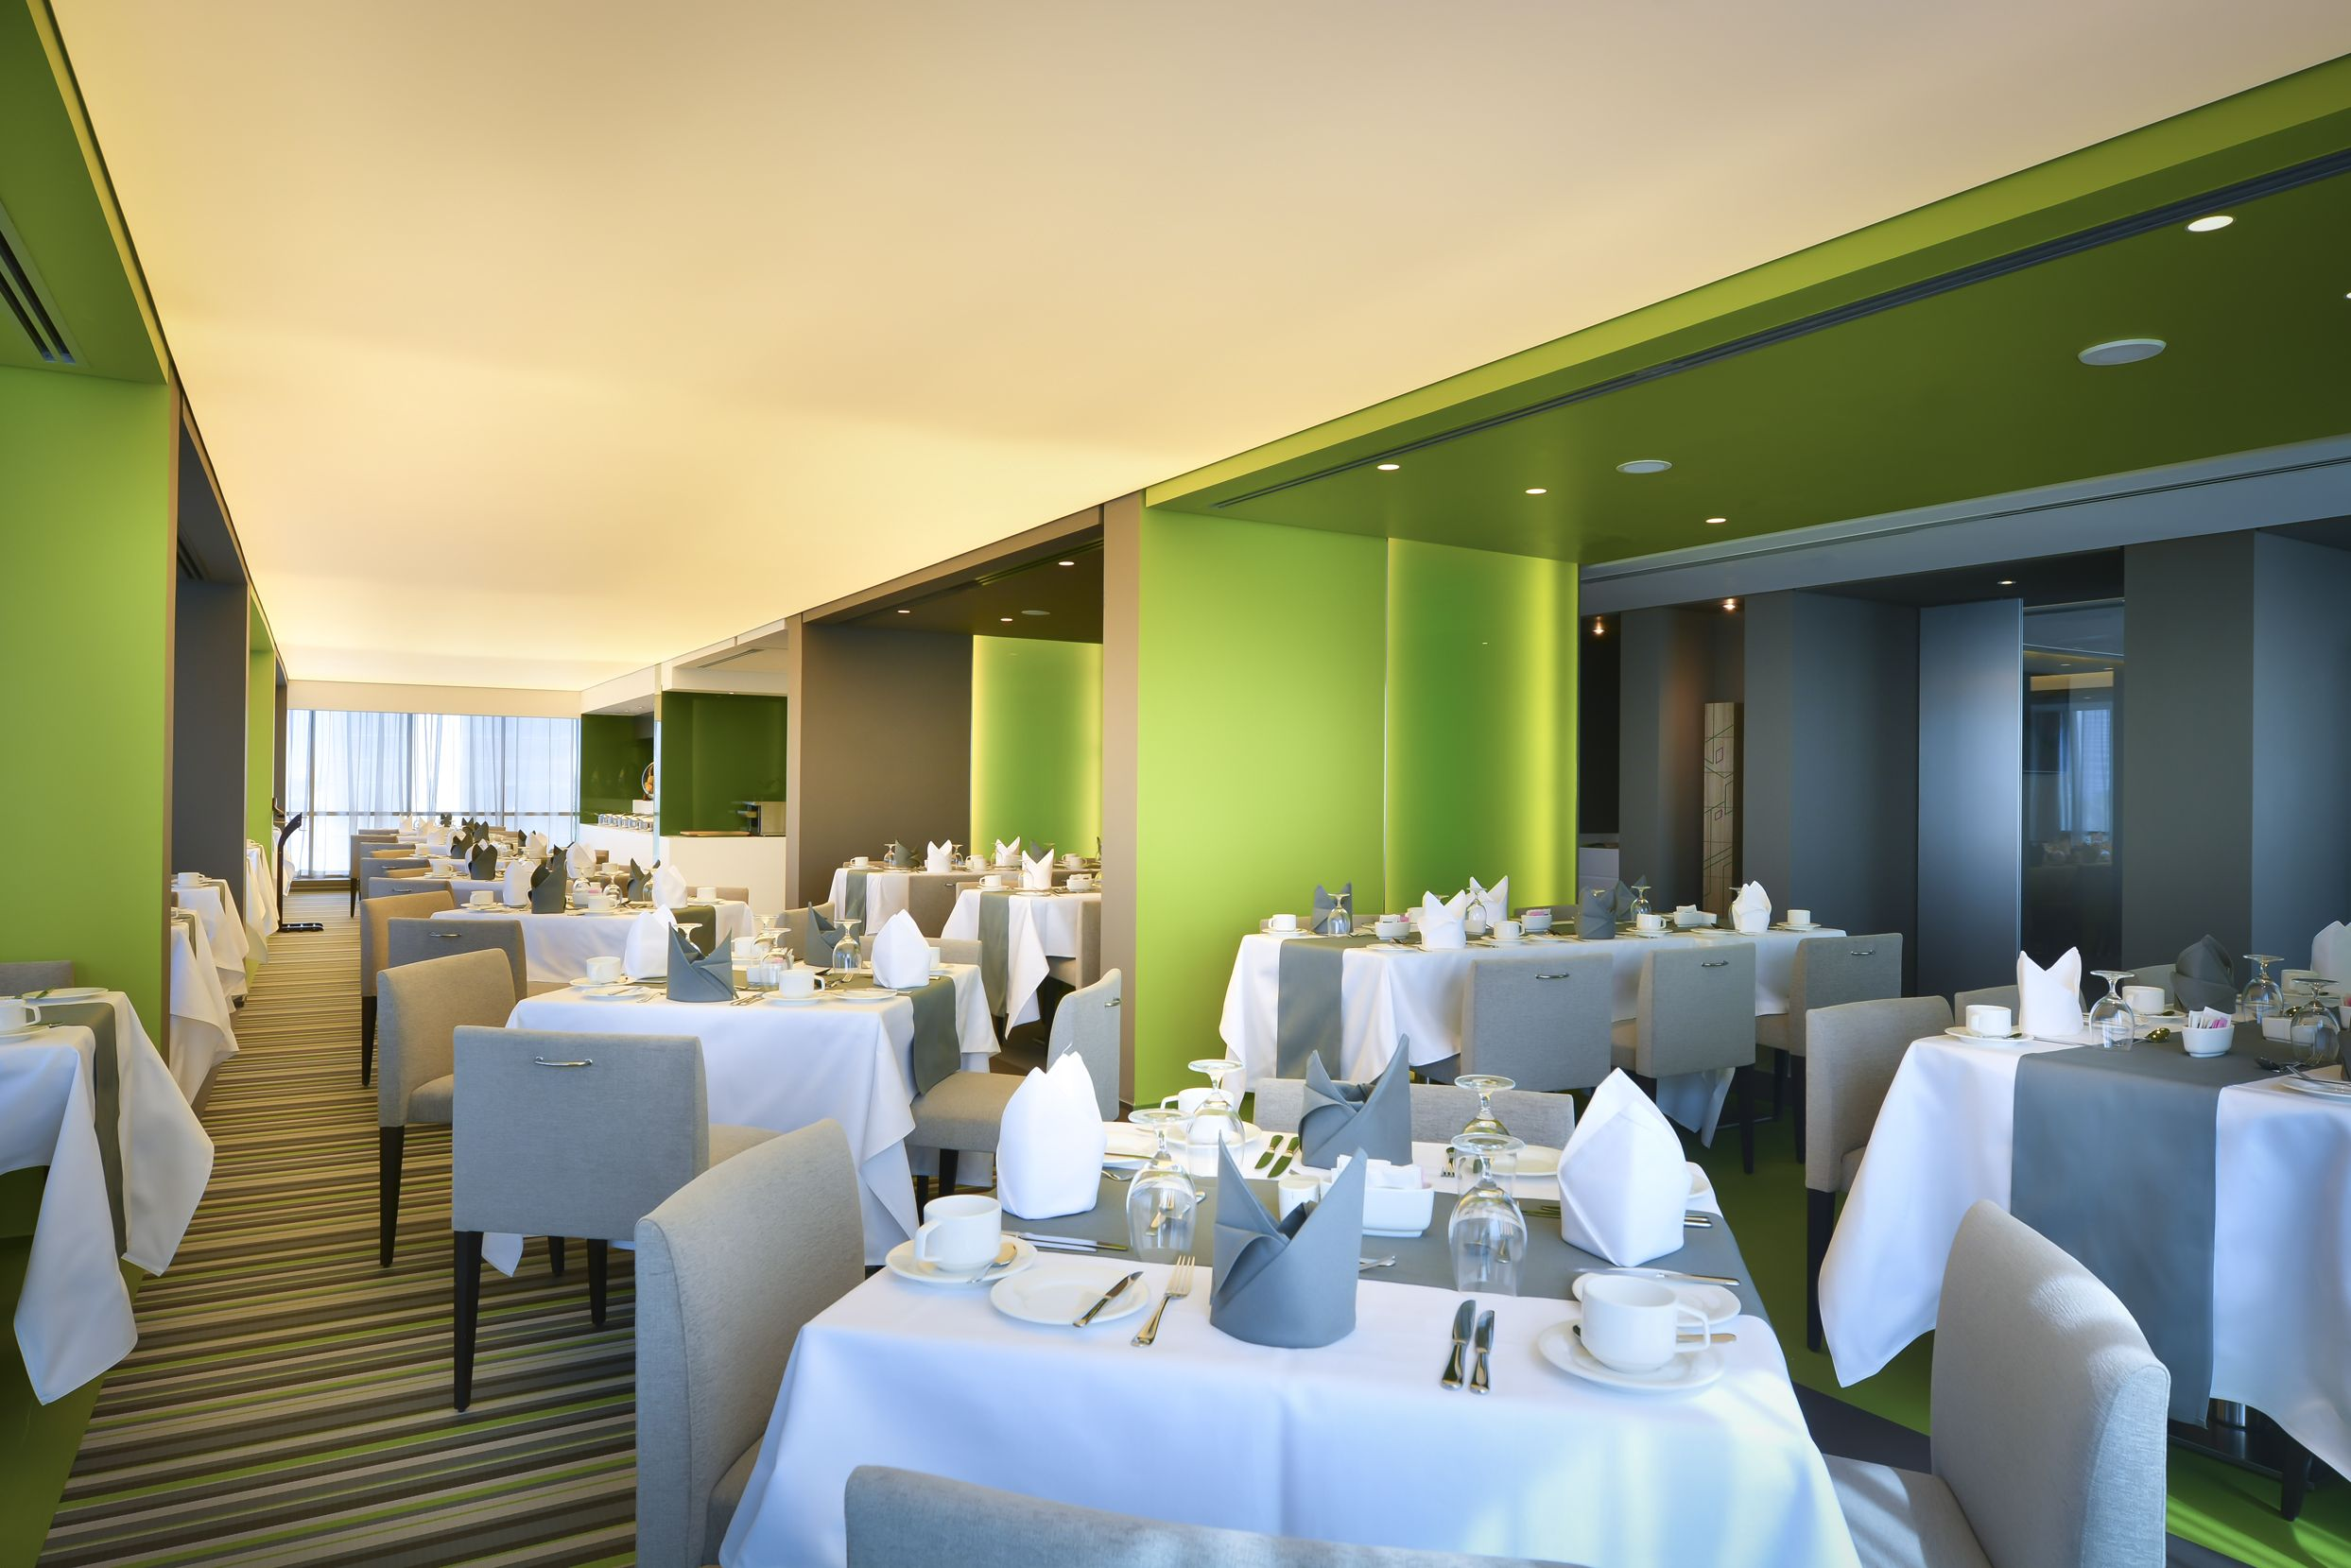 All day dining in Hotel 72 by Hues